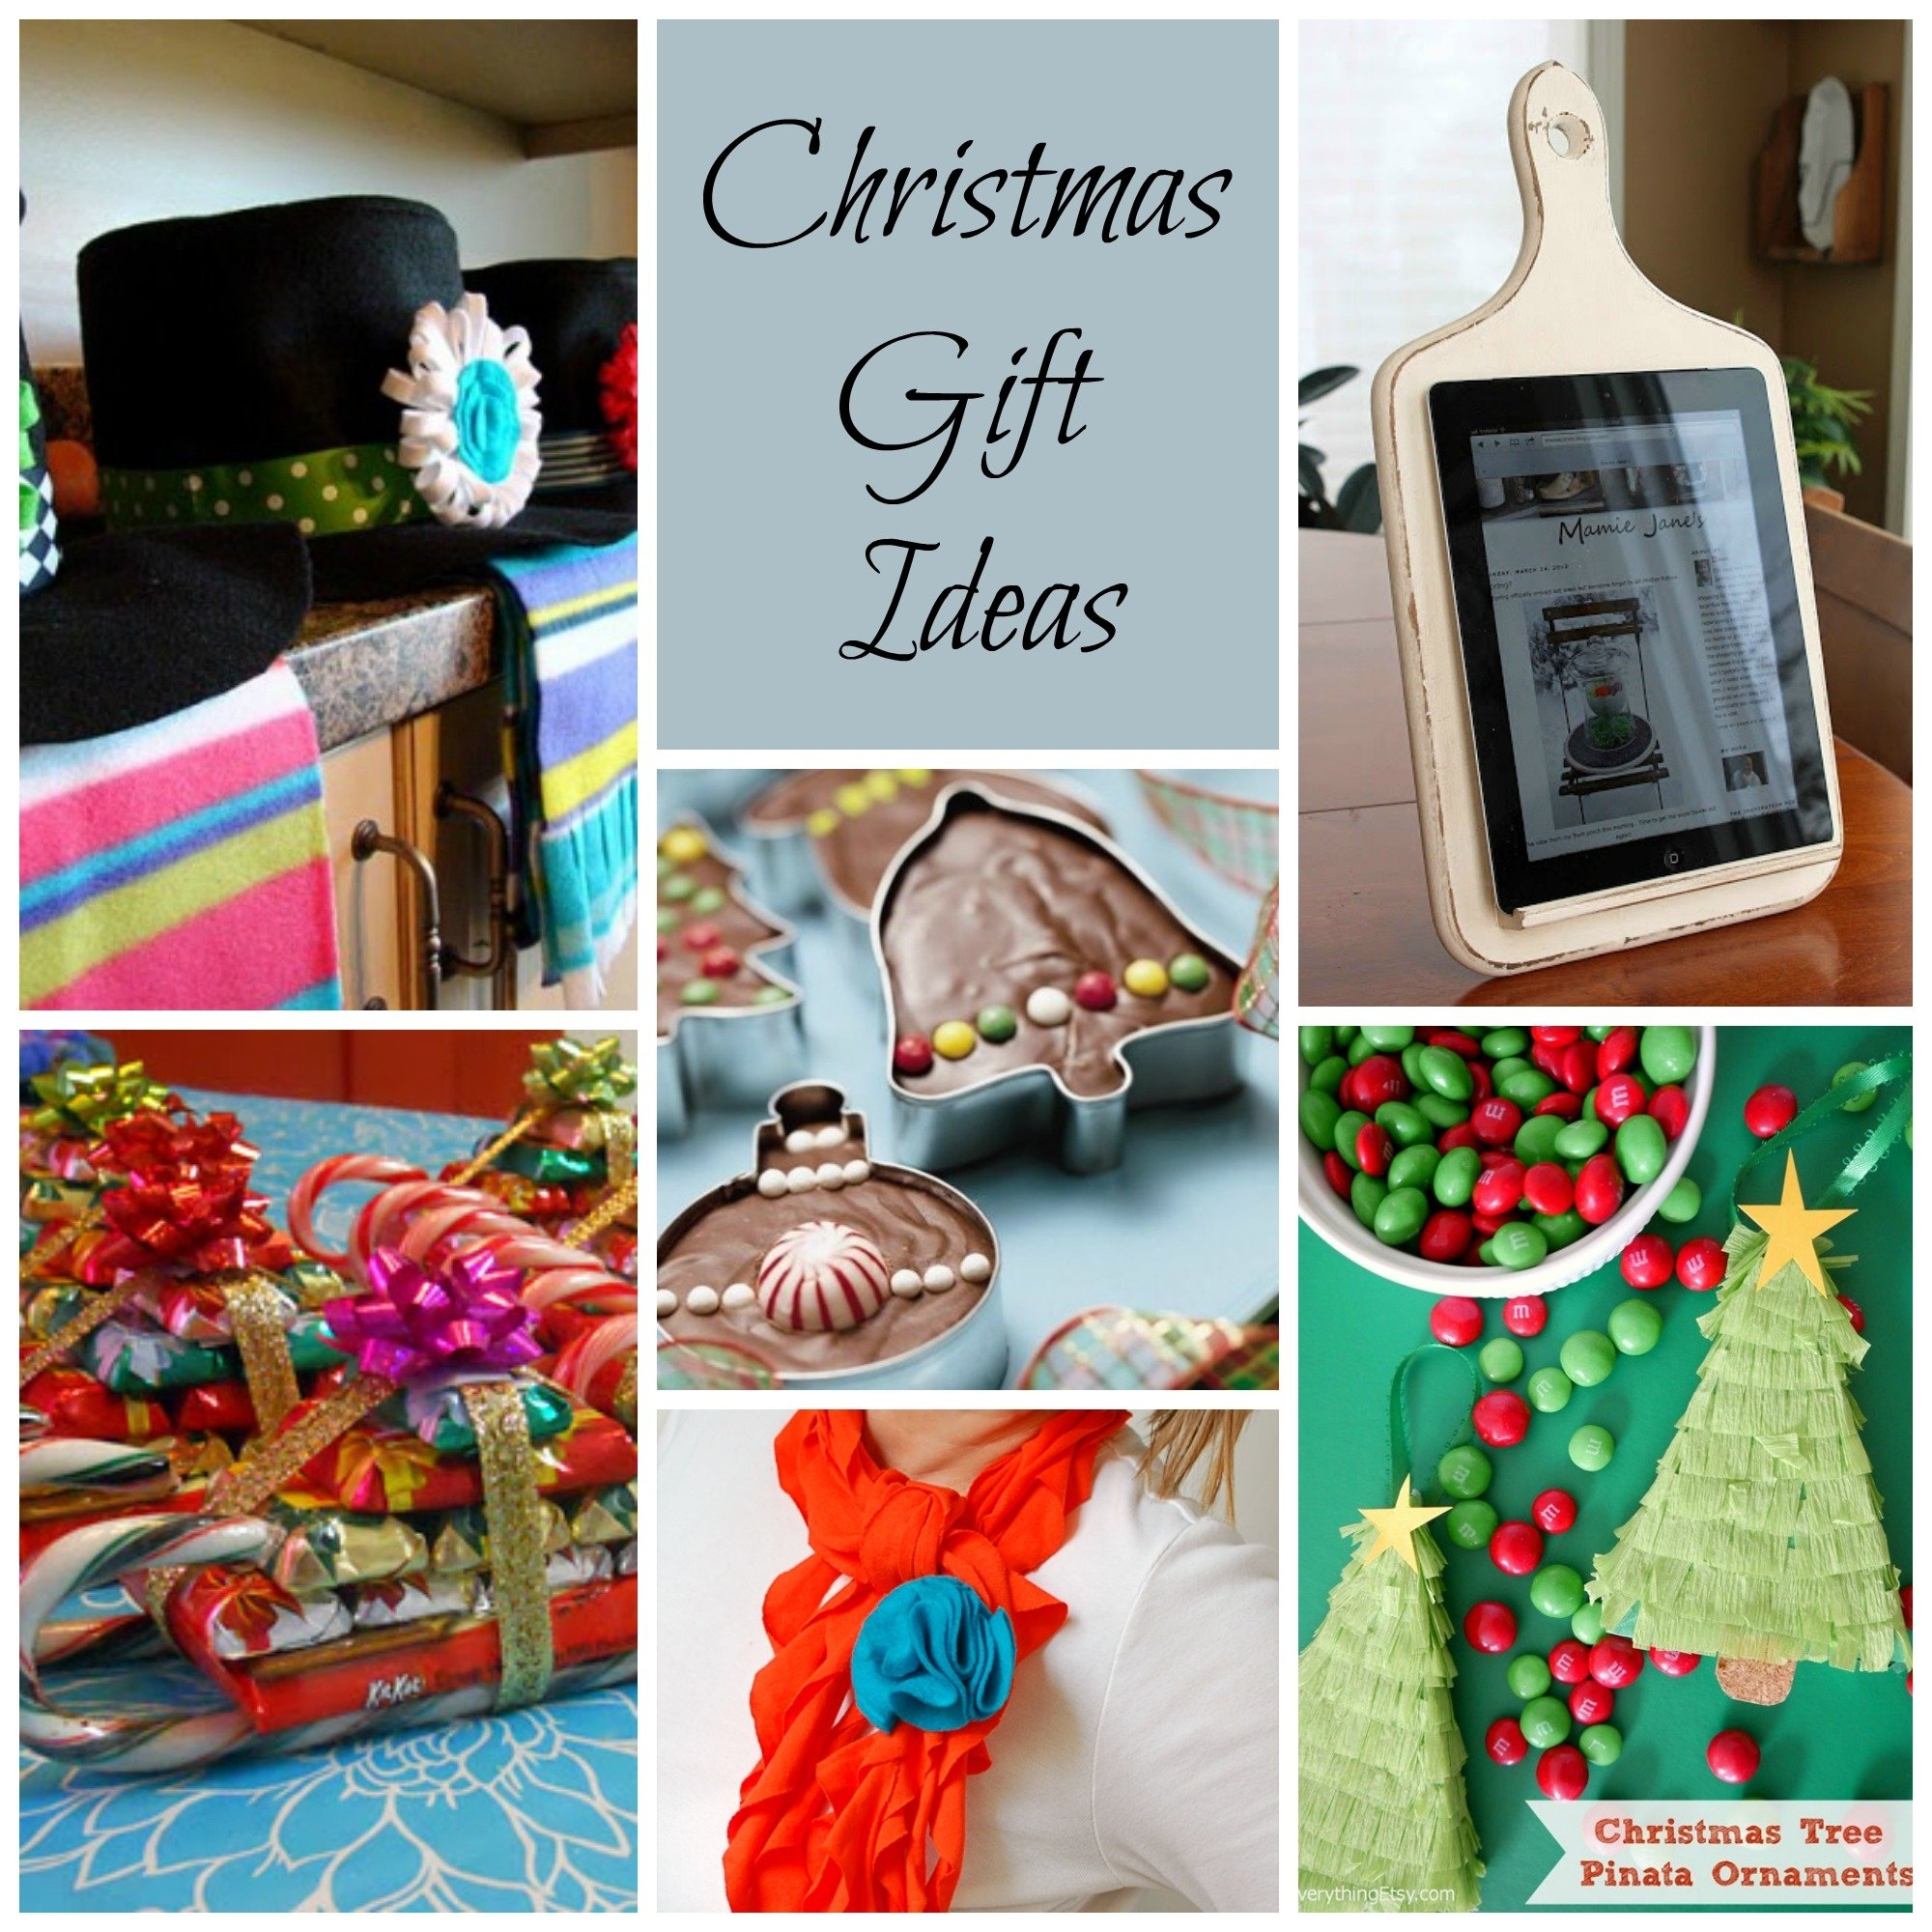 10 Stylish Christmas Gift Ideas On A Budget cheap christmas gifts for family frugal christmas gift ideas saving